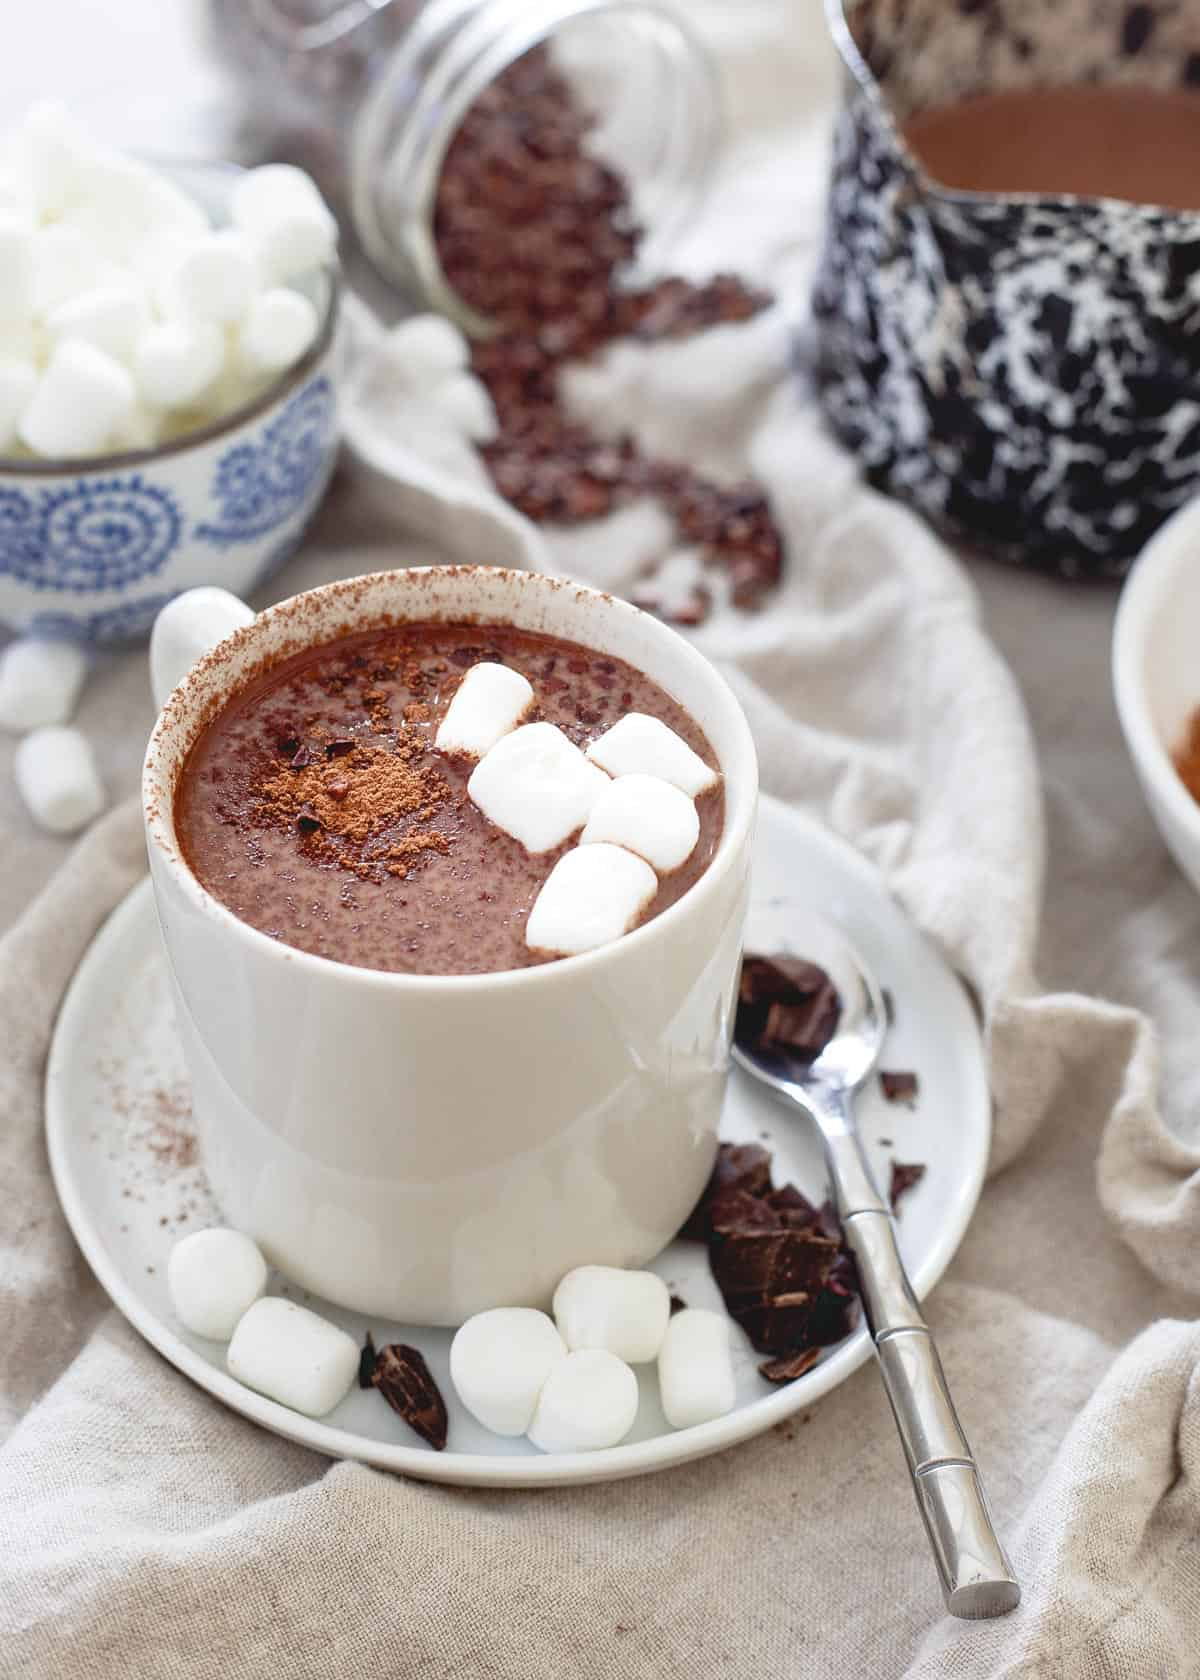 Tart cherries can help aid in muscle recovery and sleep. A mug of this creamy, decadent tart cherry hot chocolate is not only delicious but a nutritiously smart winter treat!